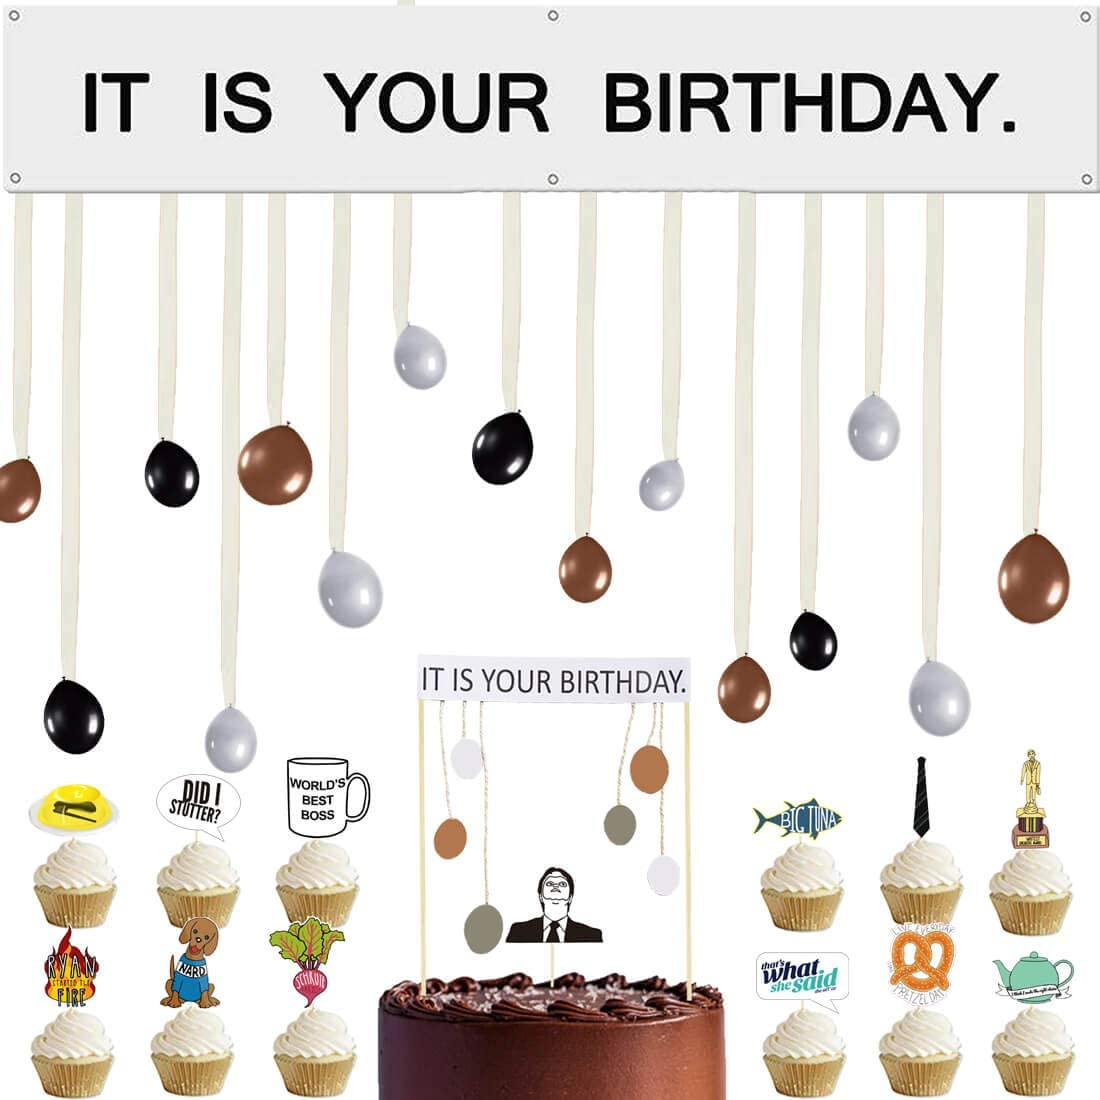 It is Your Birthday Banner, The Office Dwight Theme Infamous Husband Birthday Party Decorations The Office Cake Topper Party Merchandise by Dwight K. Schrute Baby Boy Photo Booth Props